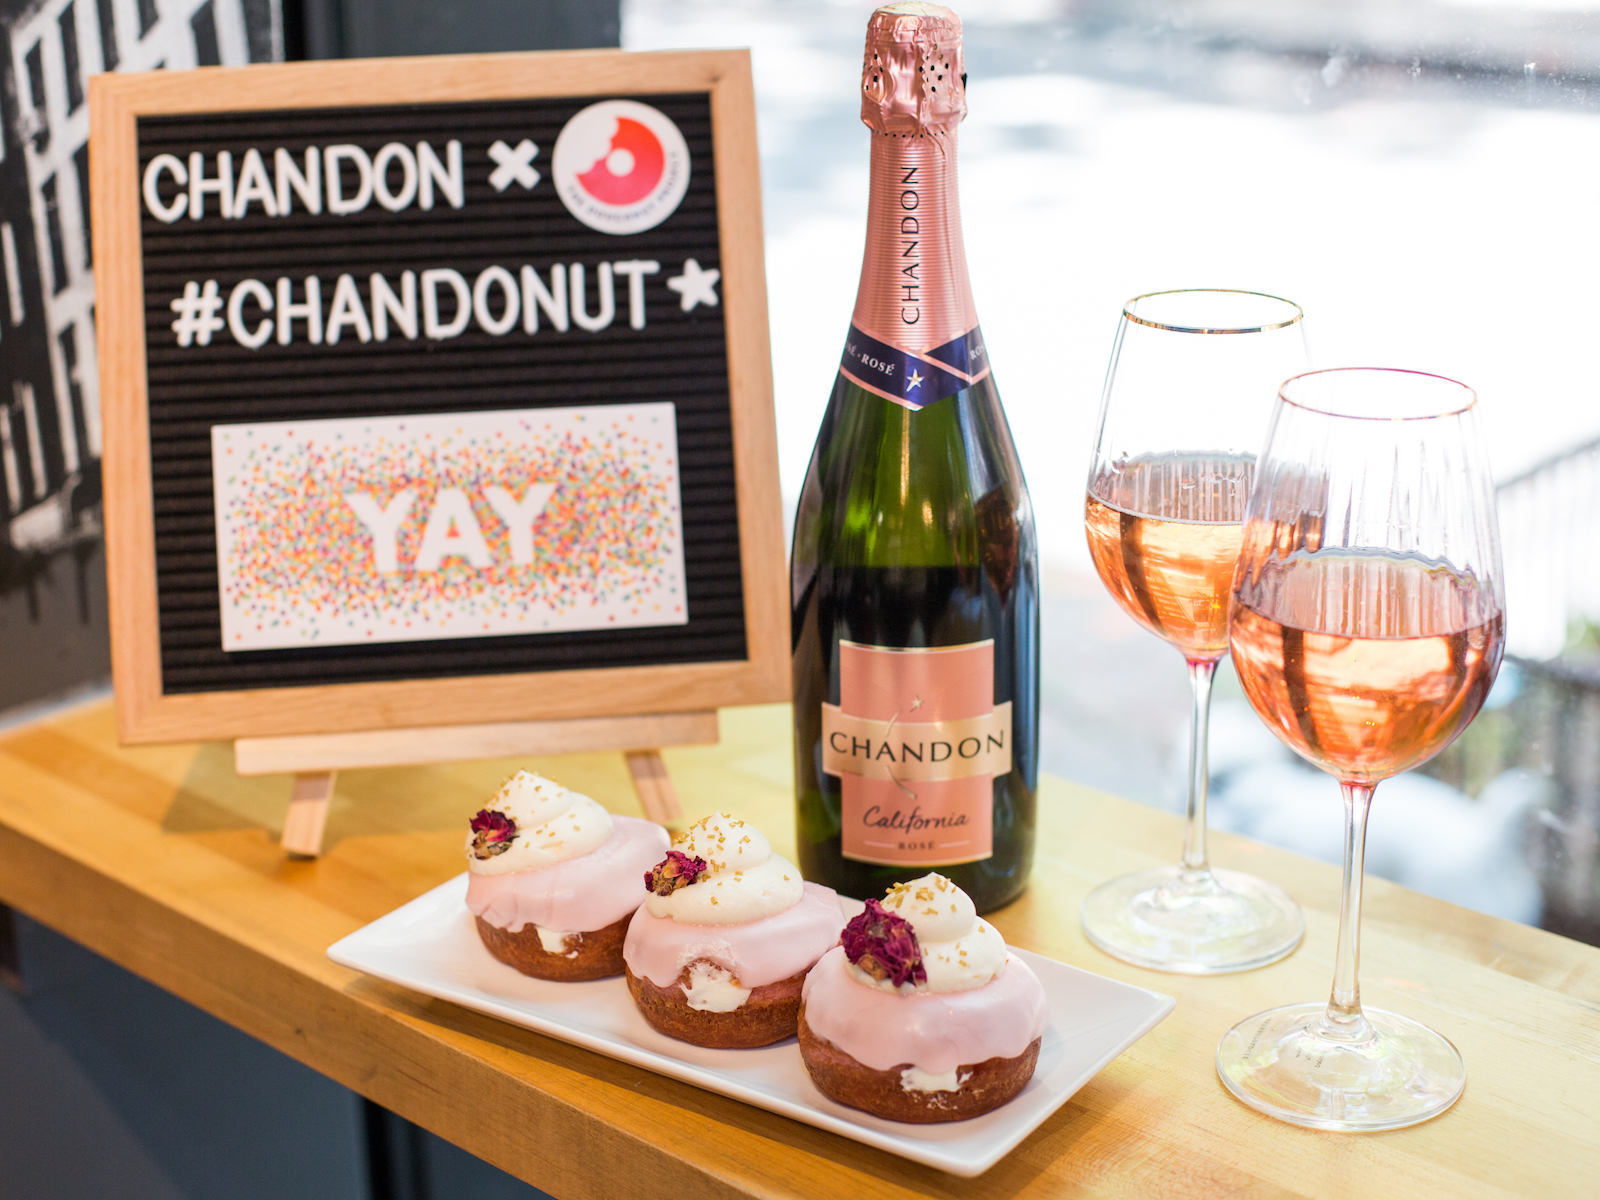 We're pretty excited about this rosé doughnut.